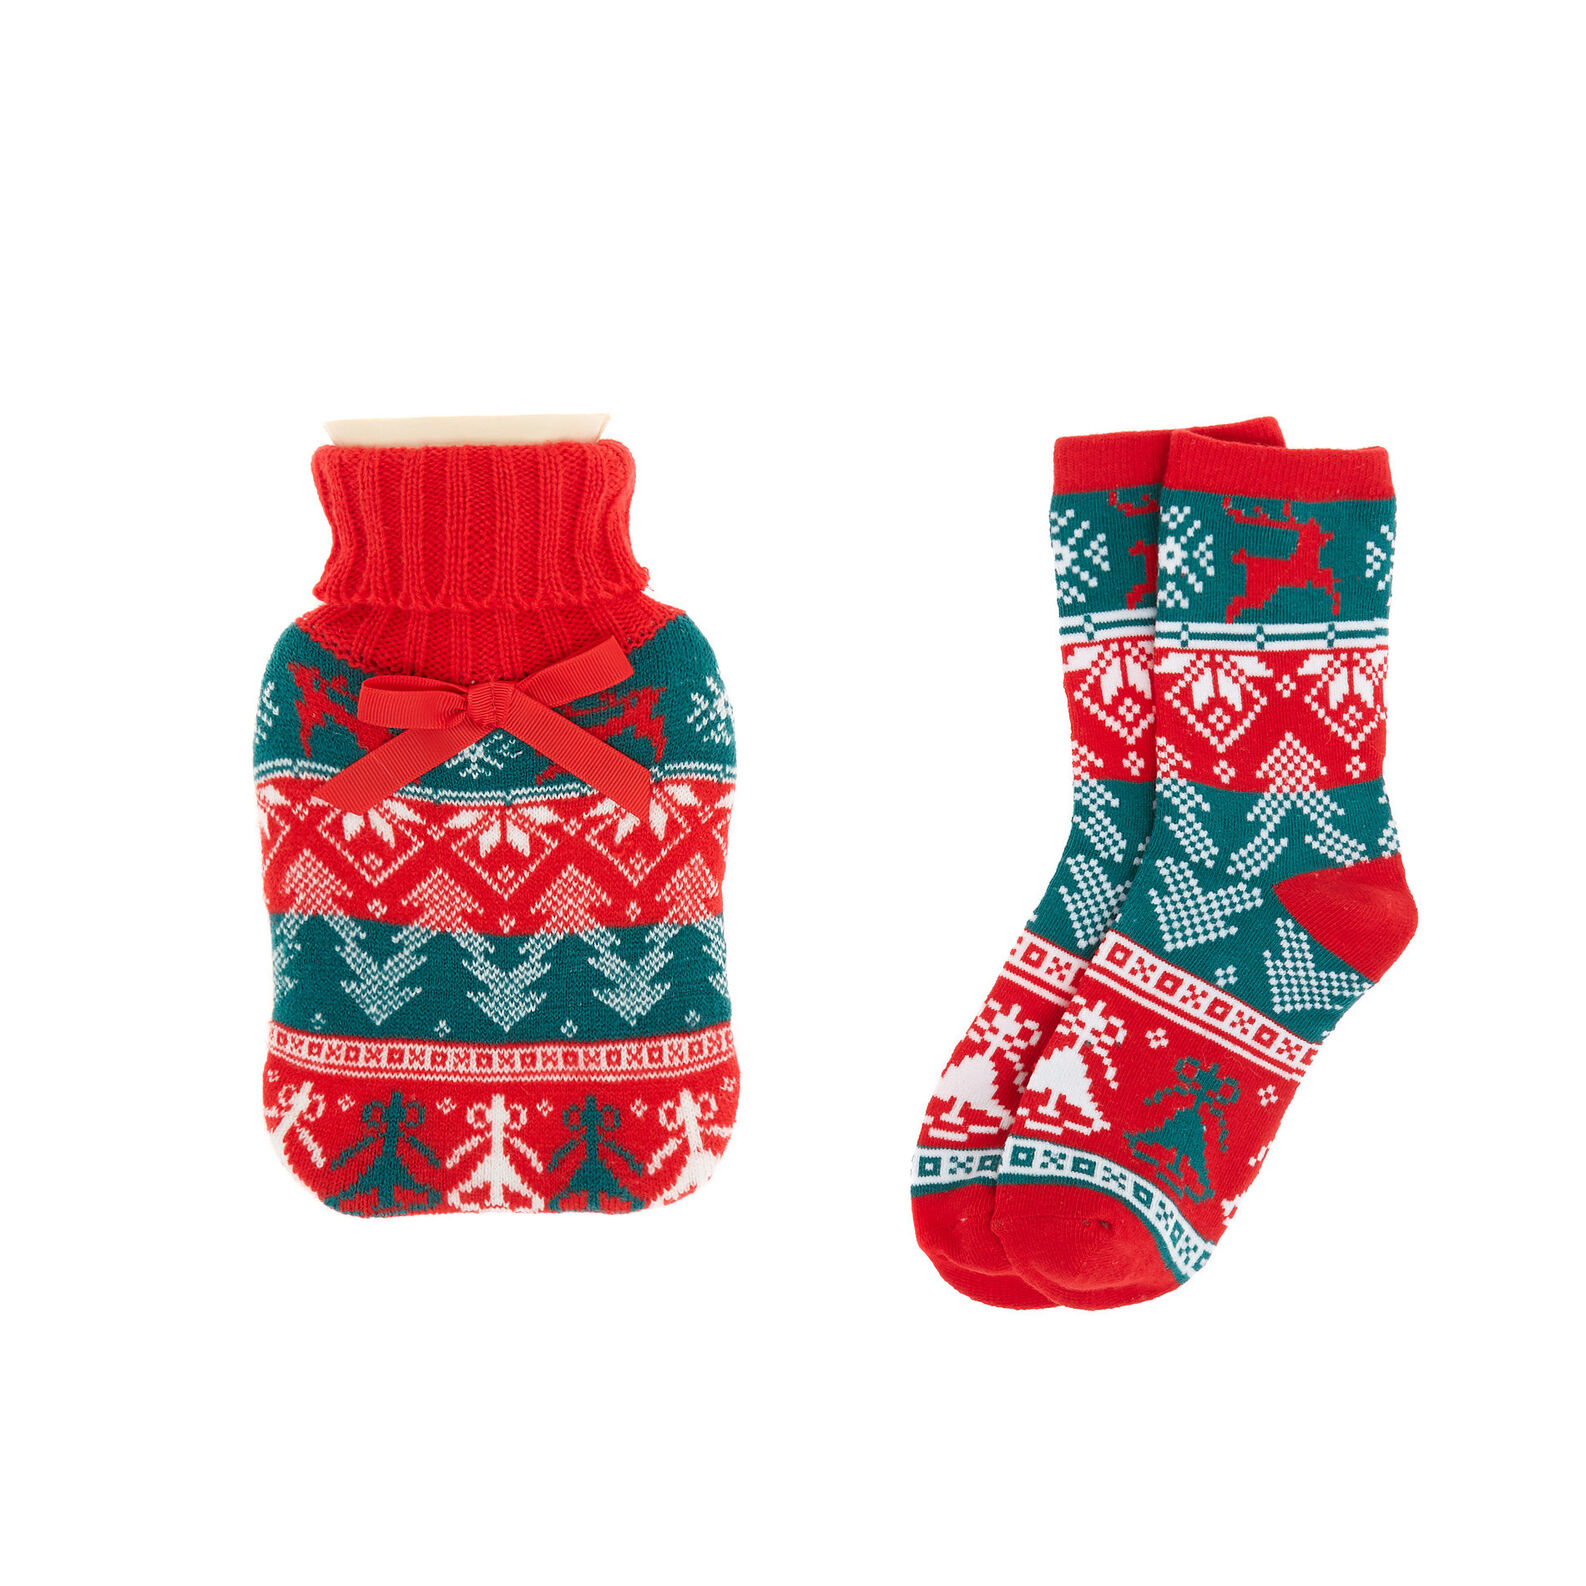 Childrens Christmas bauble and stockings